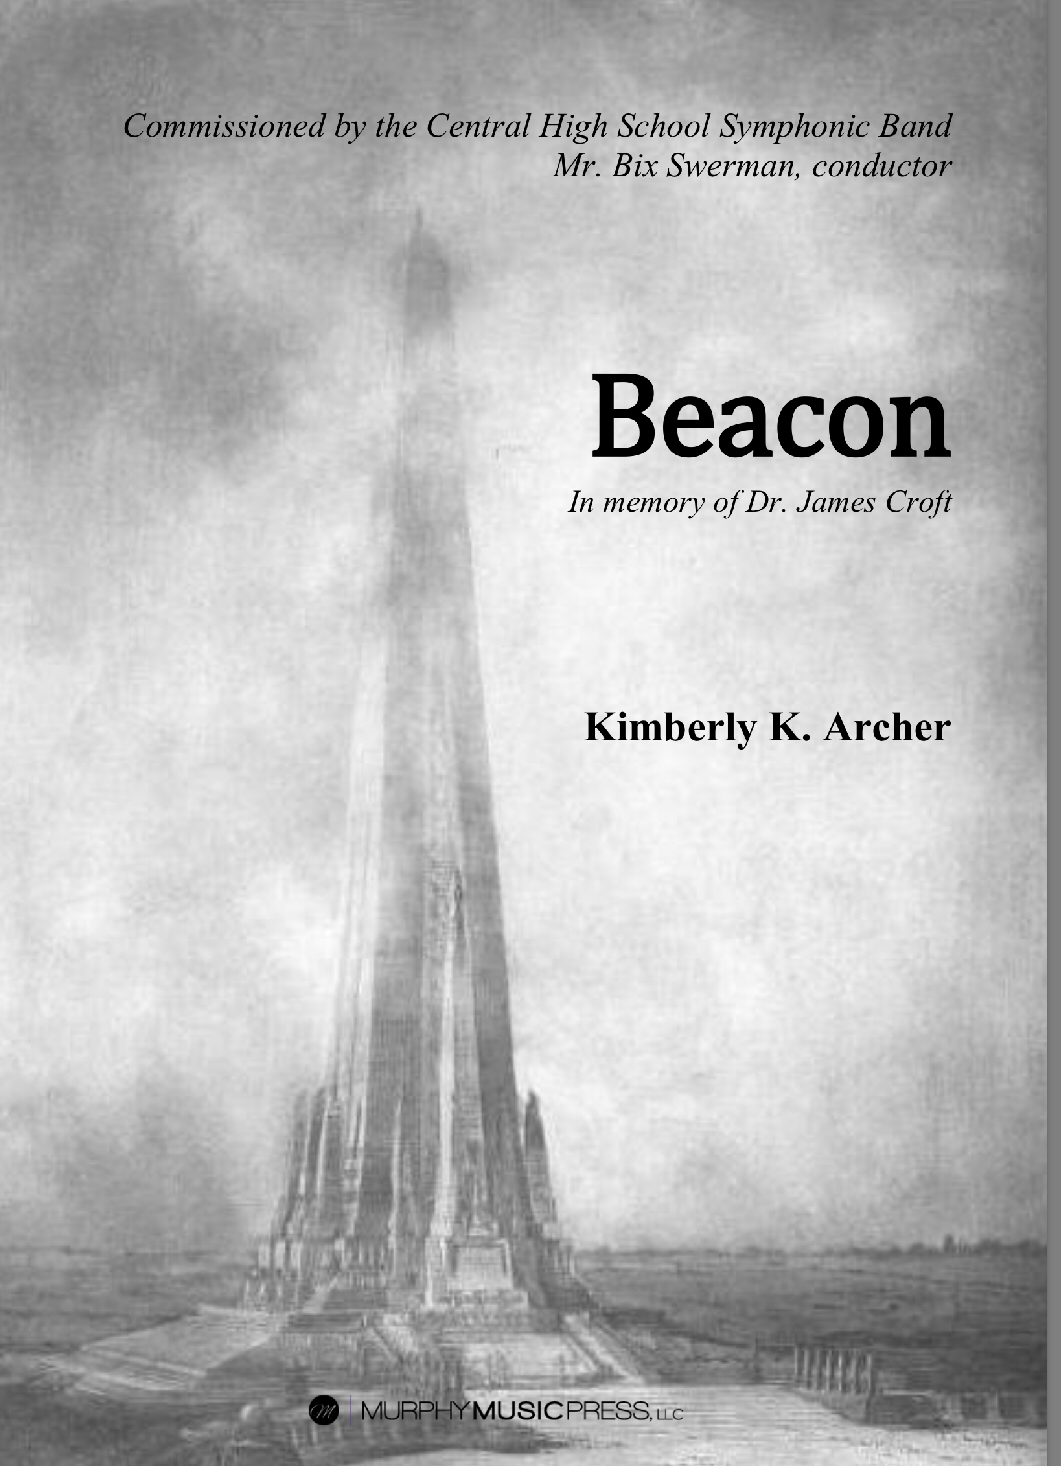 Beacon by Kimberly Archer